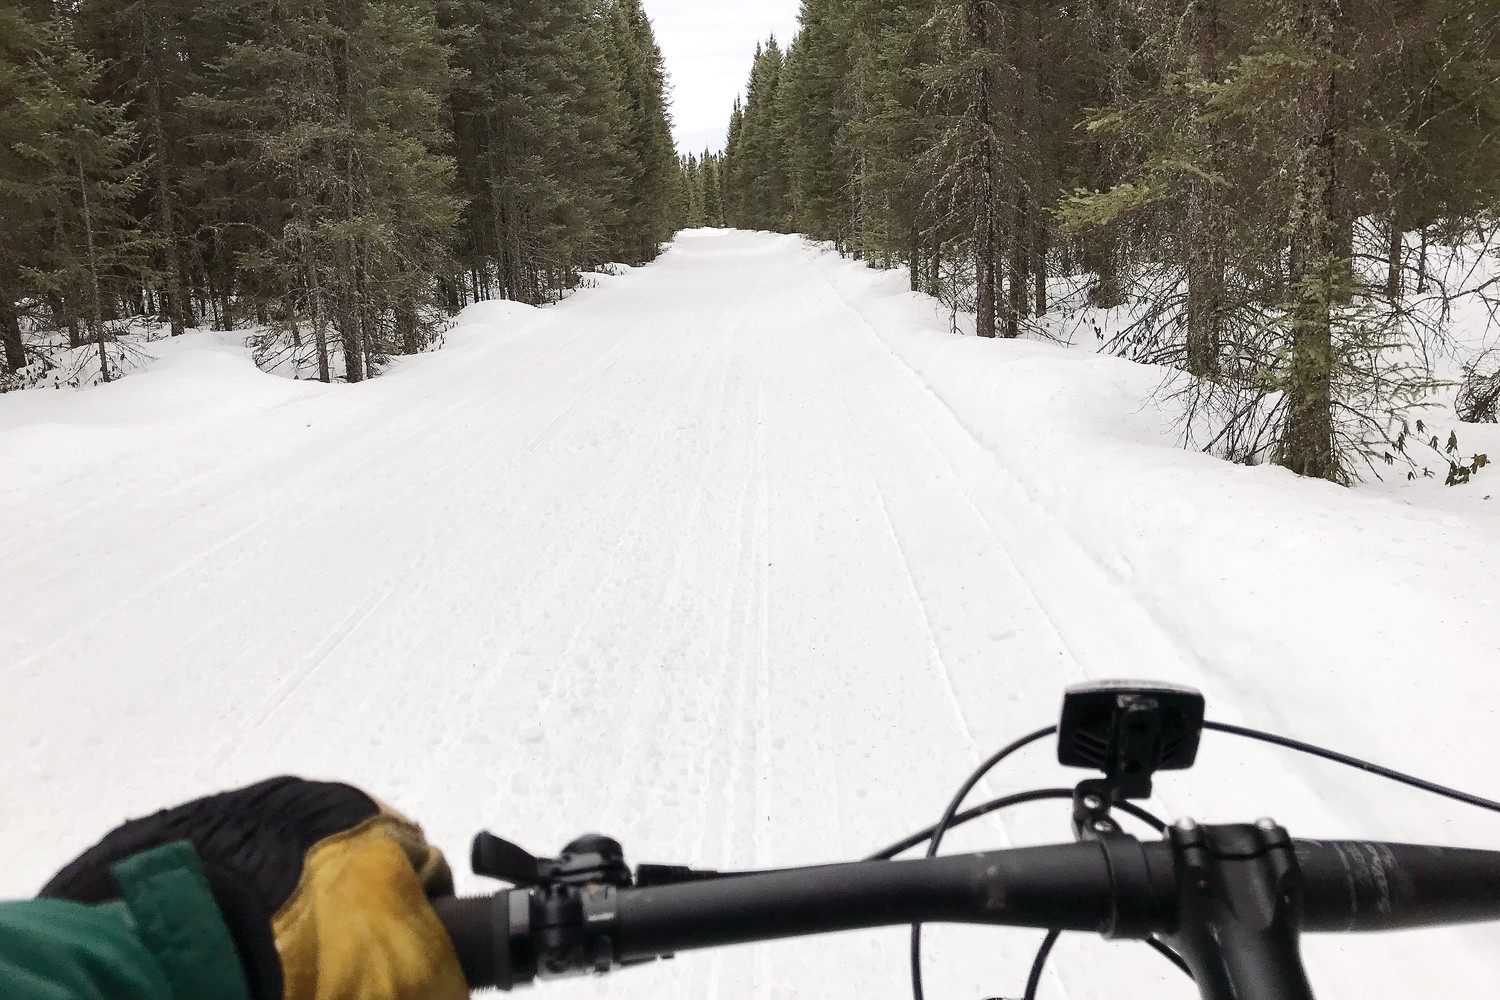 The view from the seat of the author's fat tire bike while riding along the Arrowhead Trail near Cook recently.